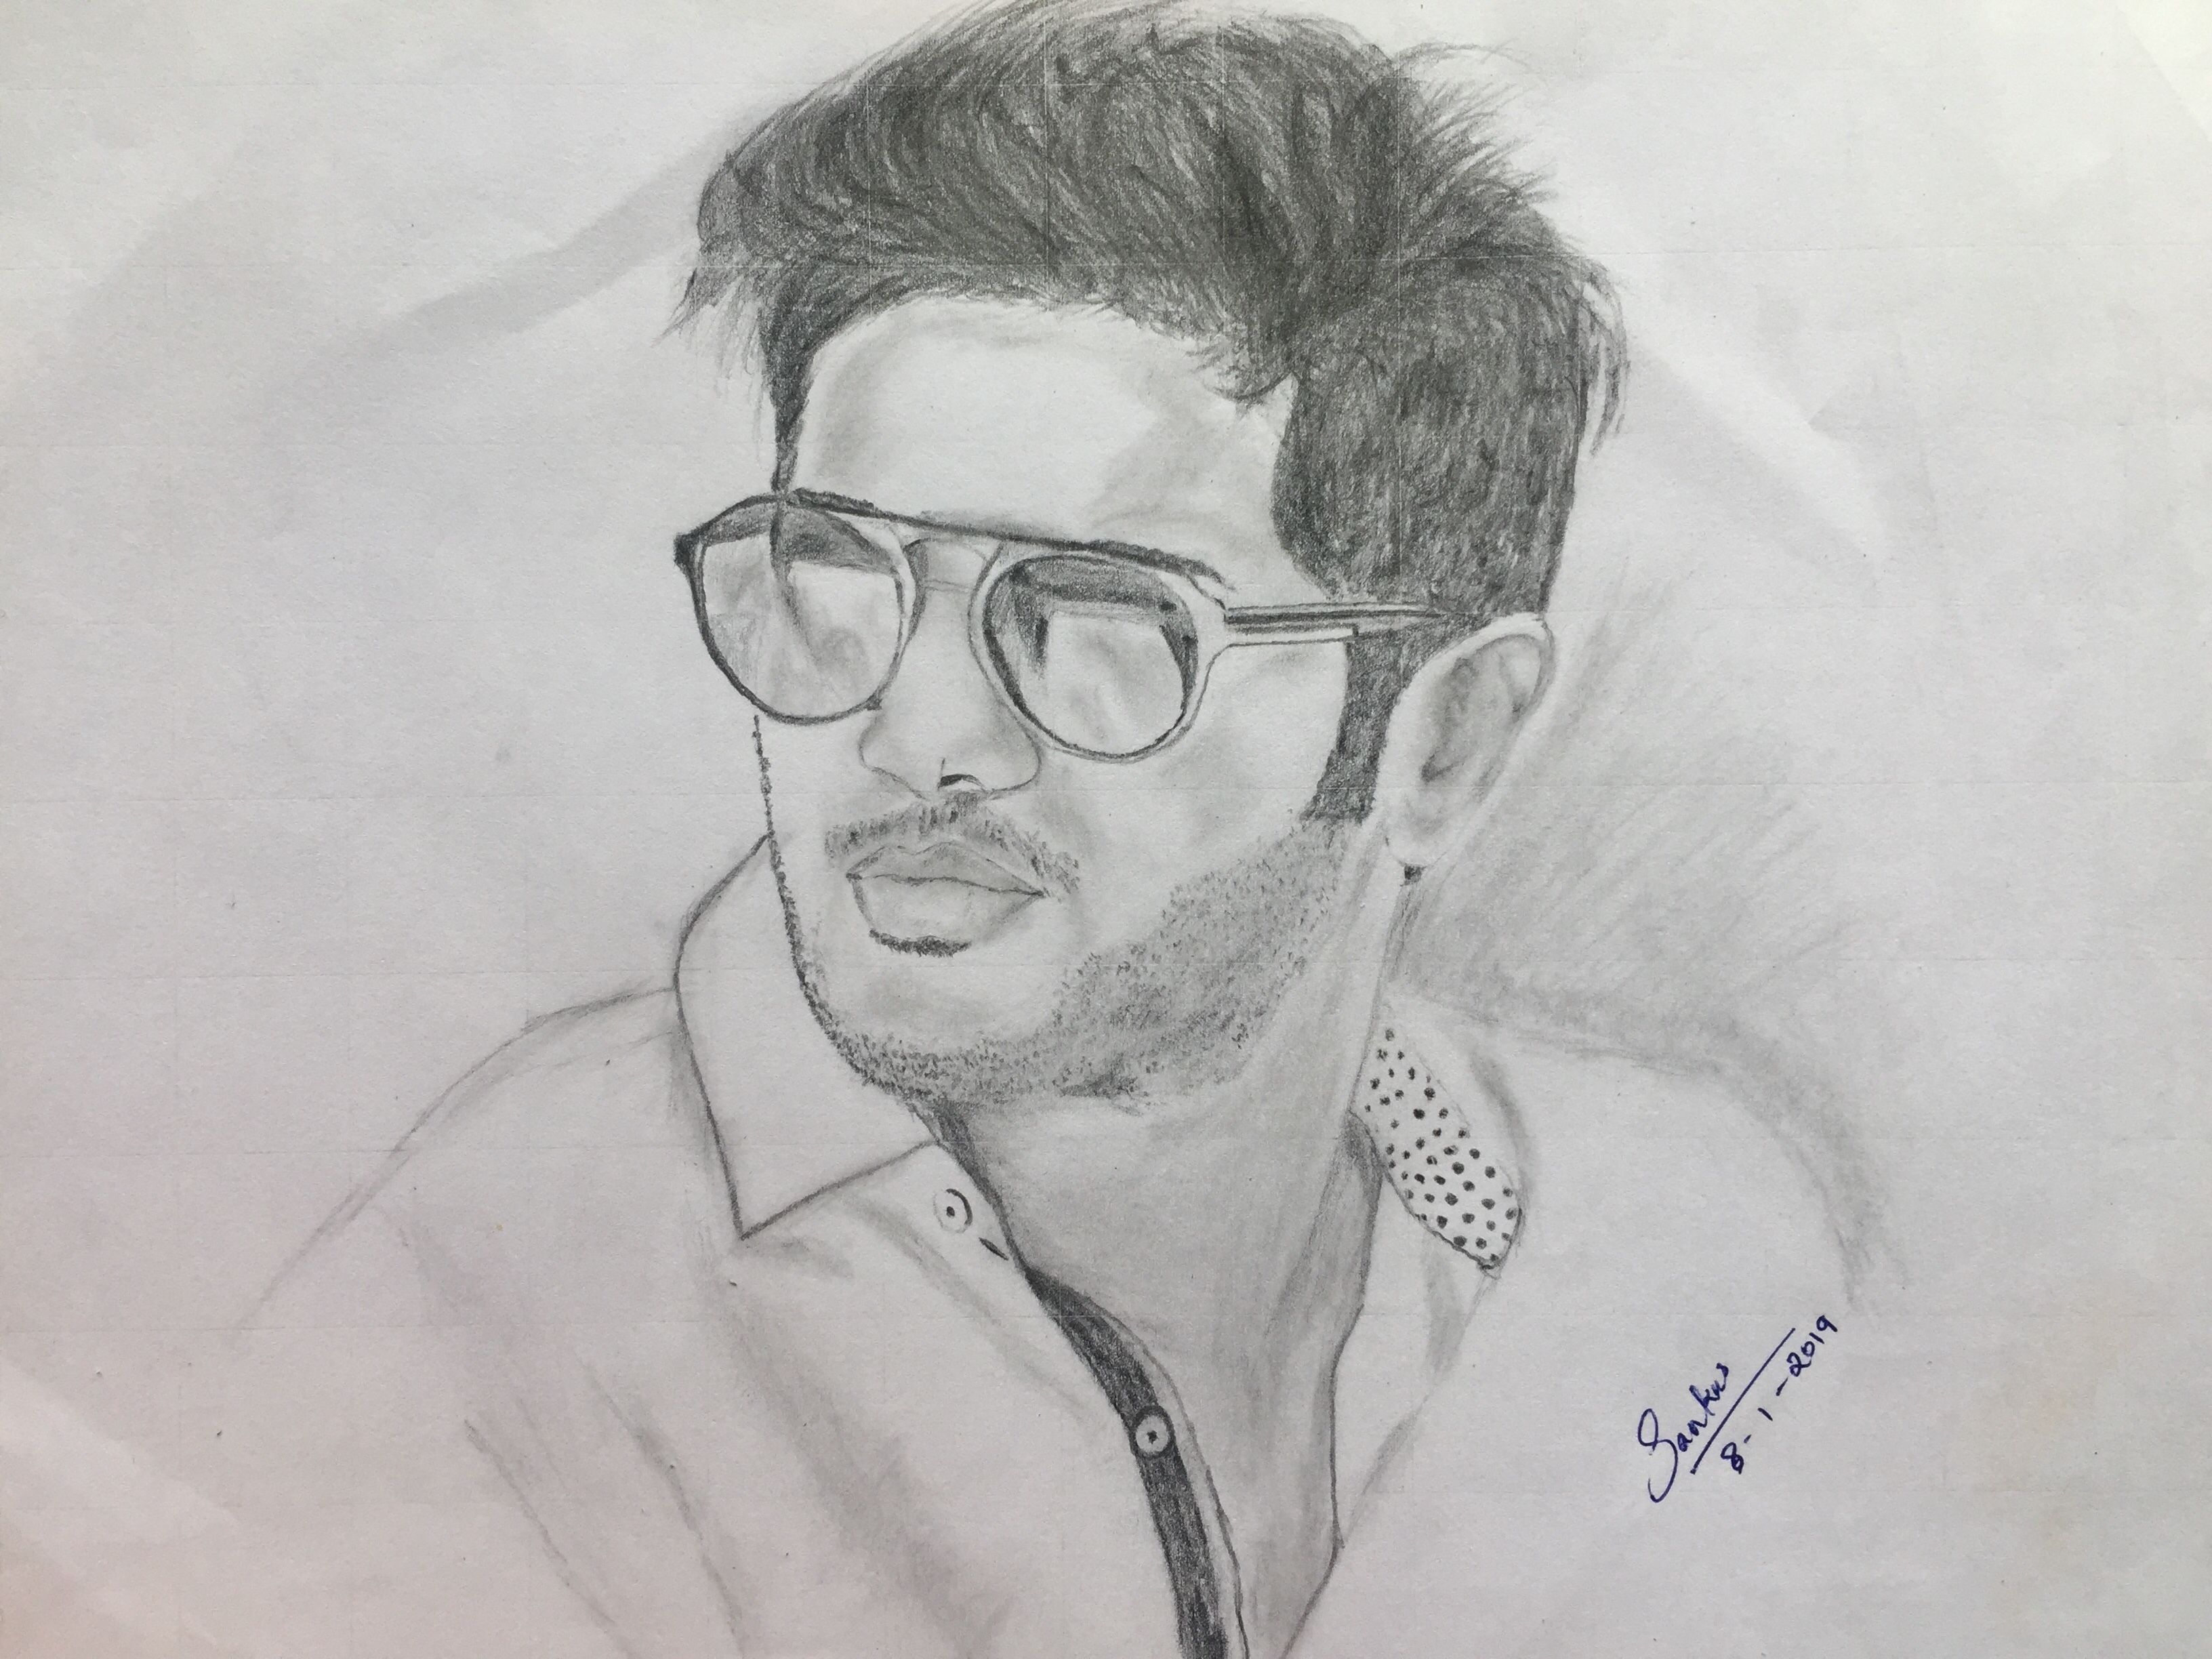 Dulquer salman pencil drawing art attack in 2019 pencil drawings